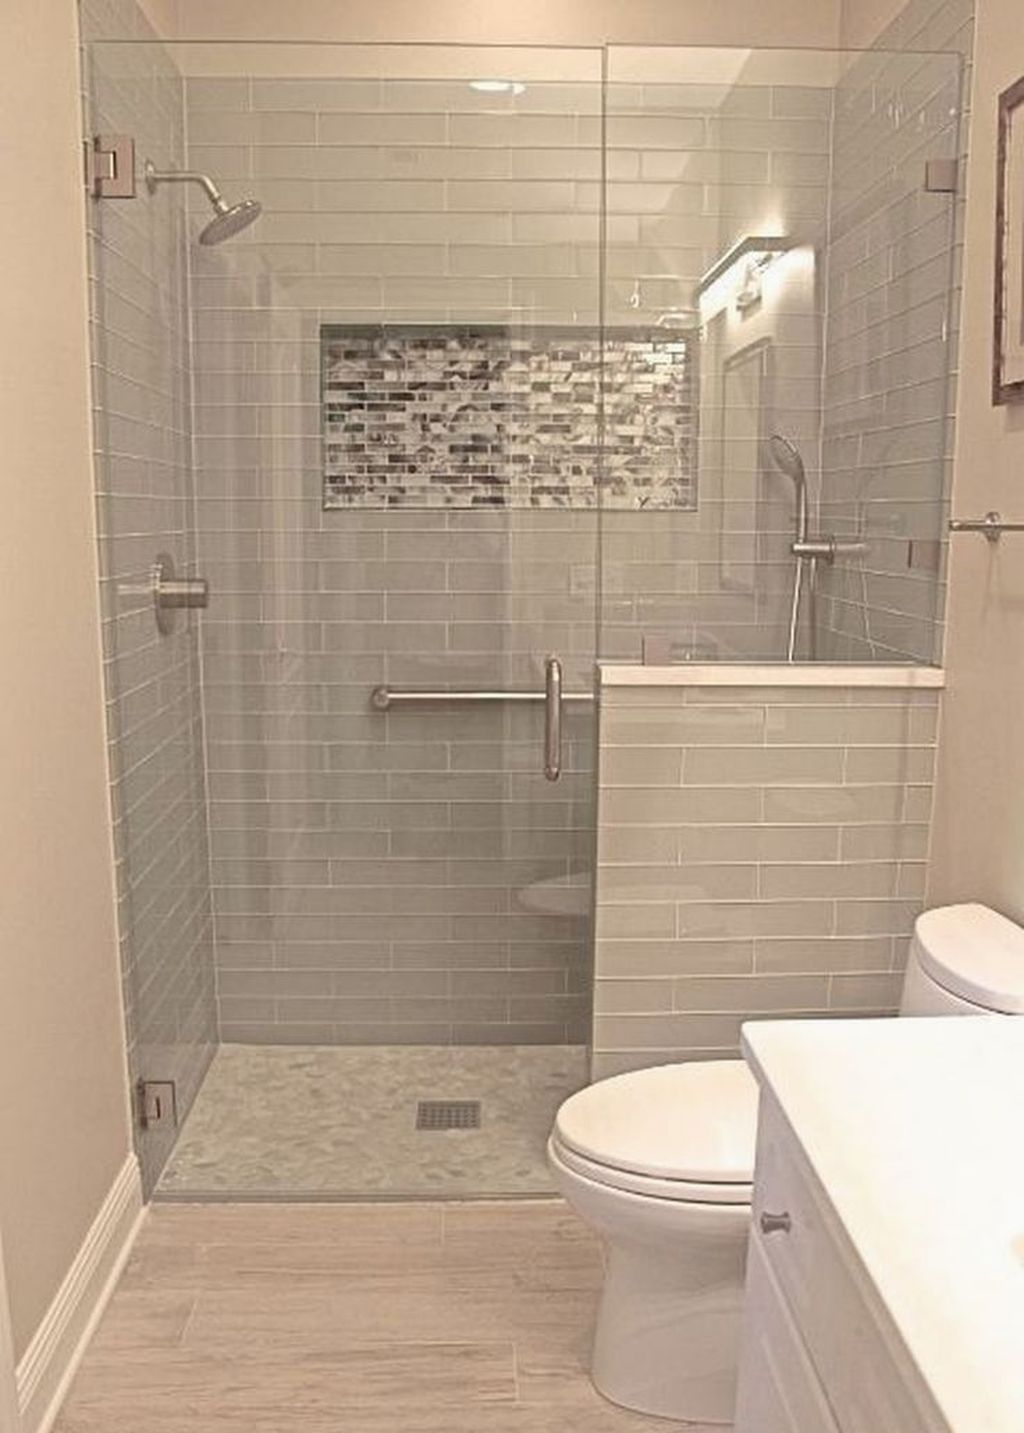 35 Stylish Small Bathroom Remodel Ideas On A Budget With Images